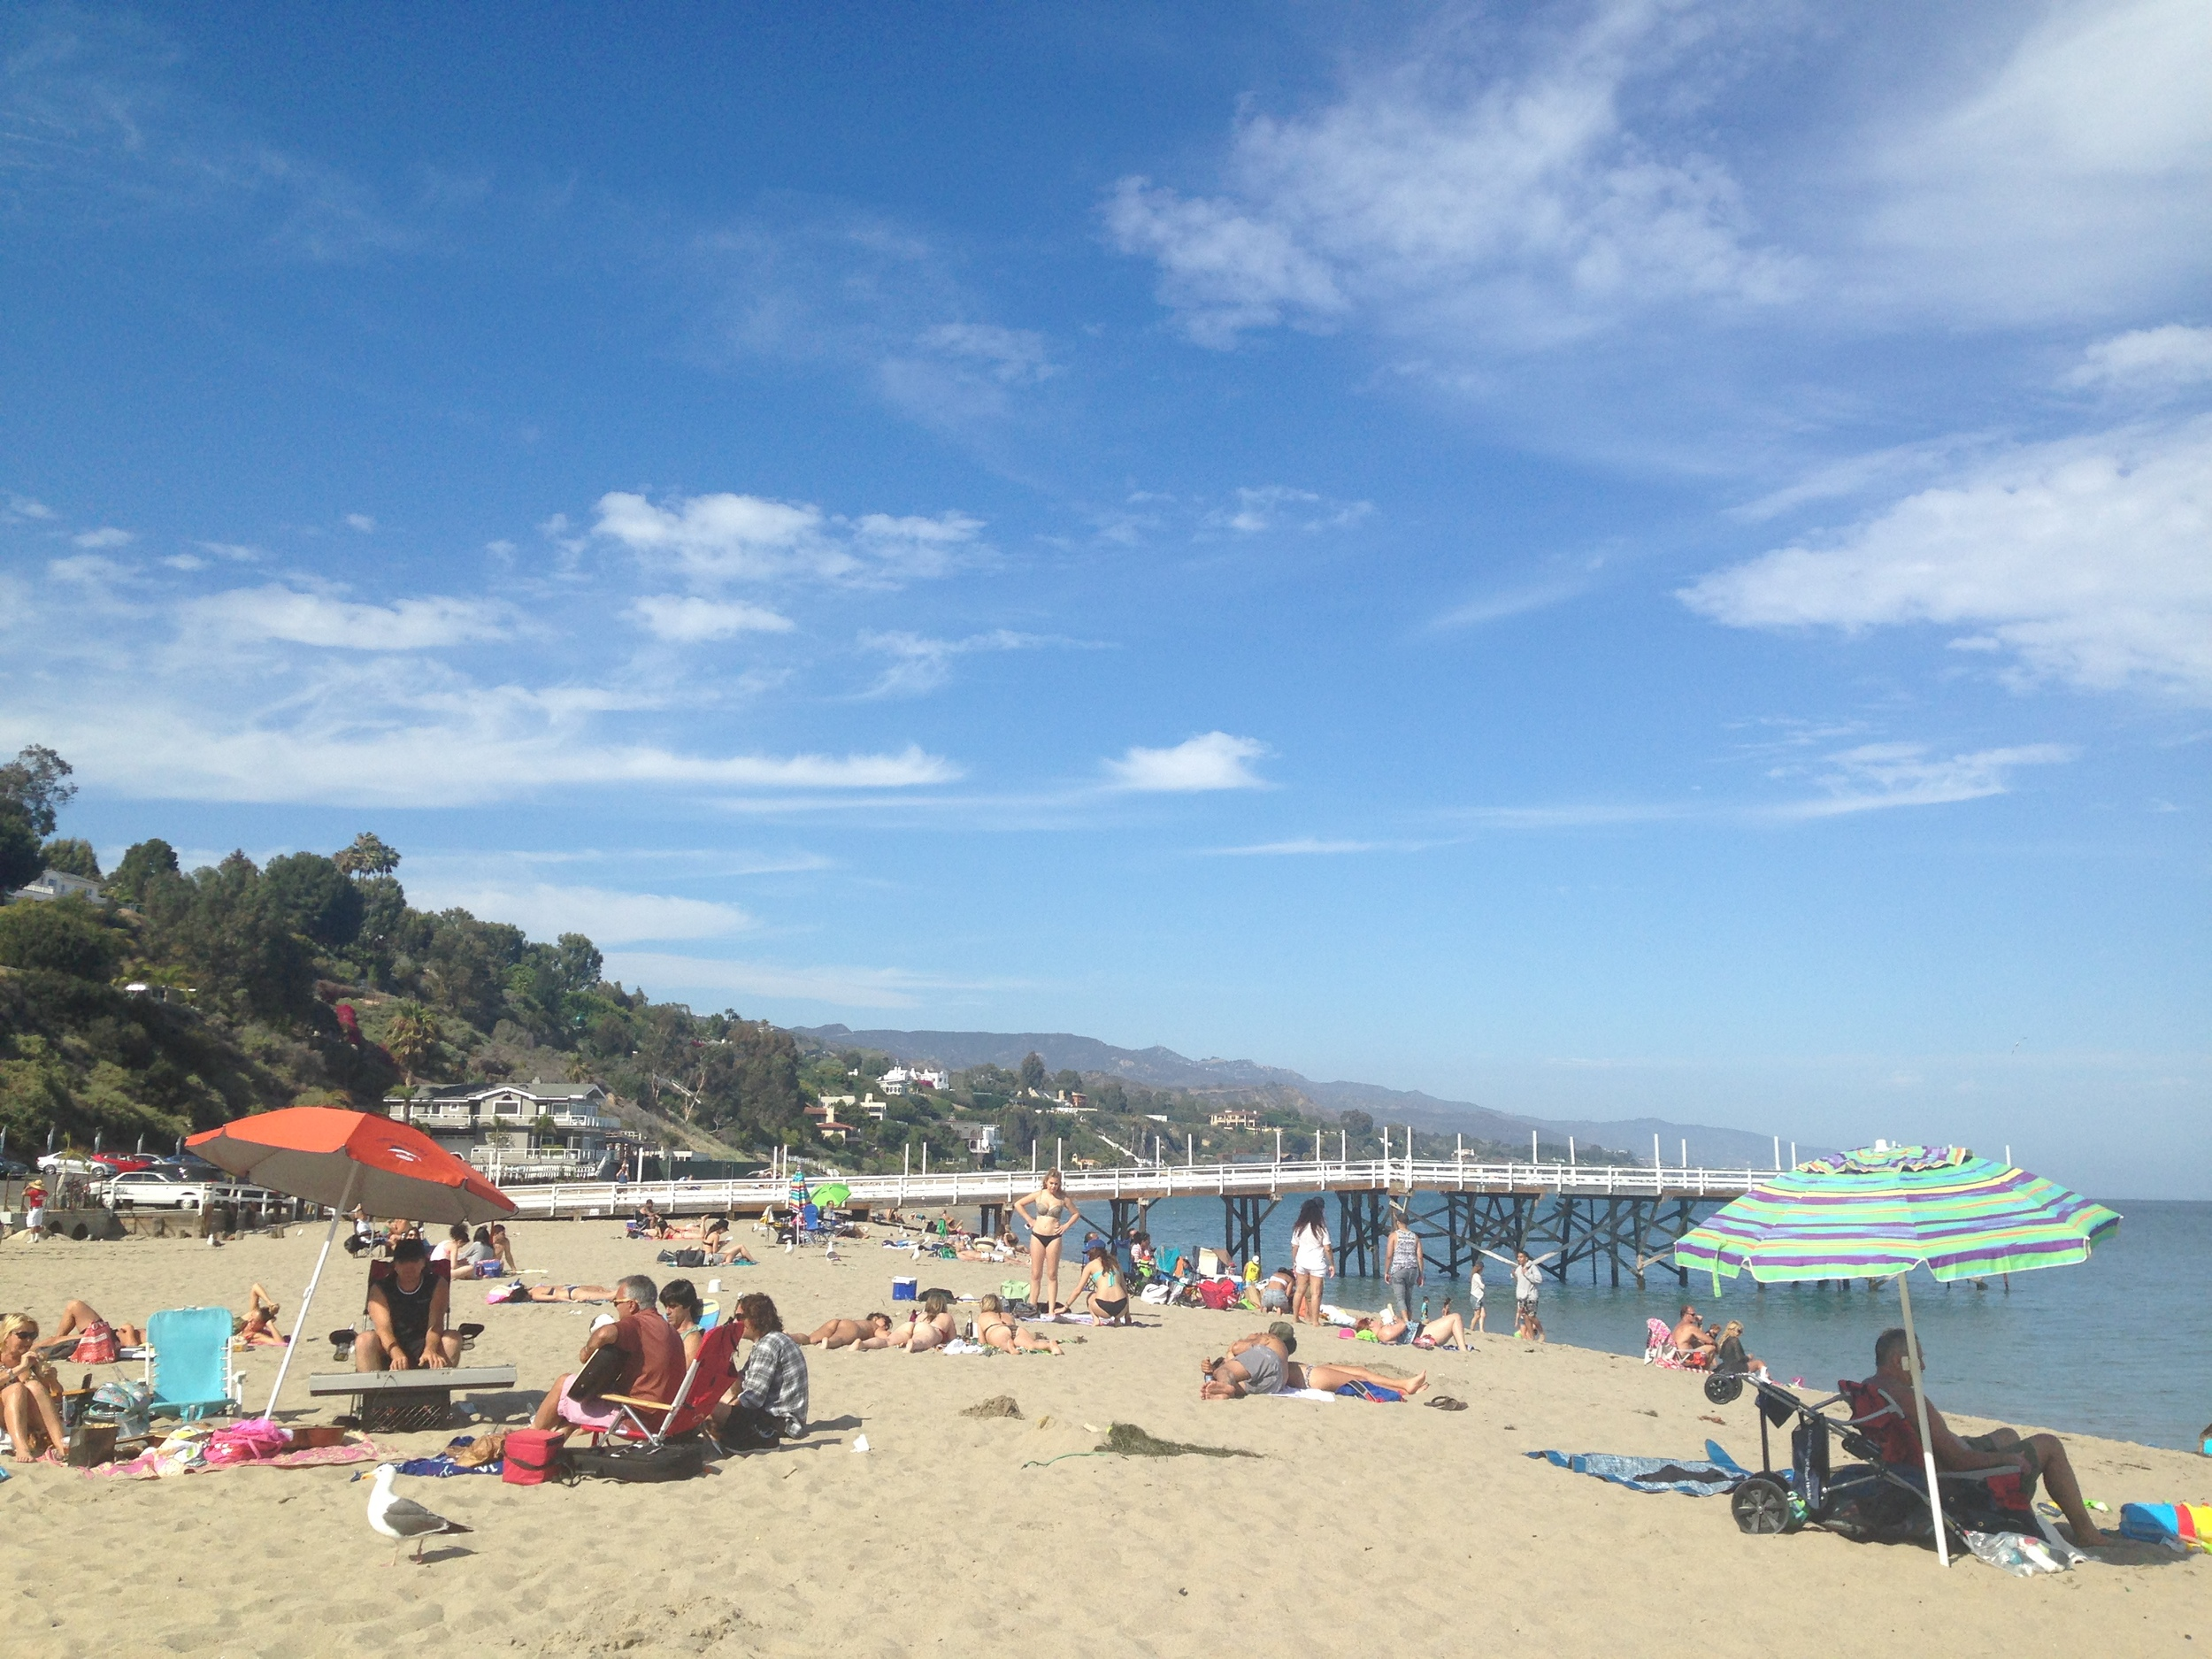 Paradise Cove in Malibu! Where I fulfilled my life-long dream of drinking out of a coconut...then cut my foot walking in the sand.